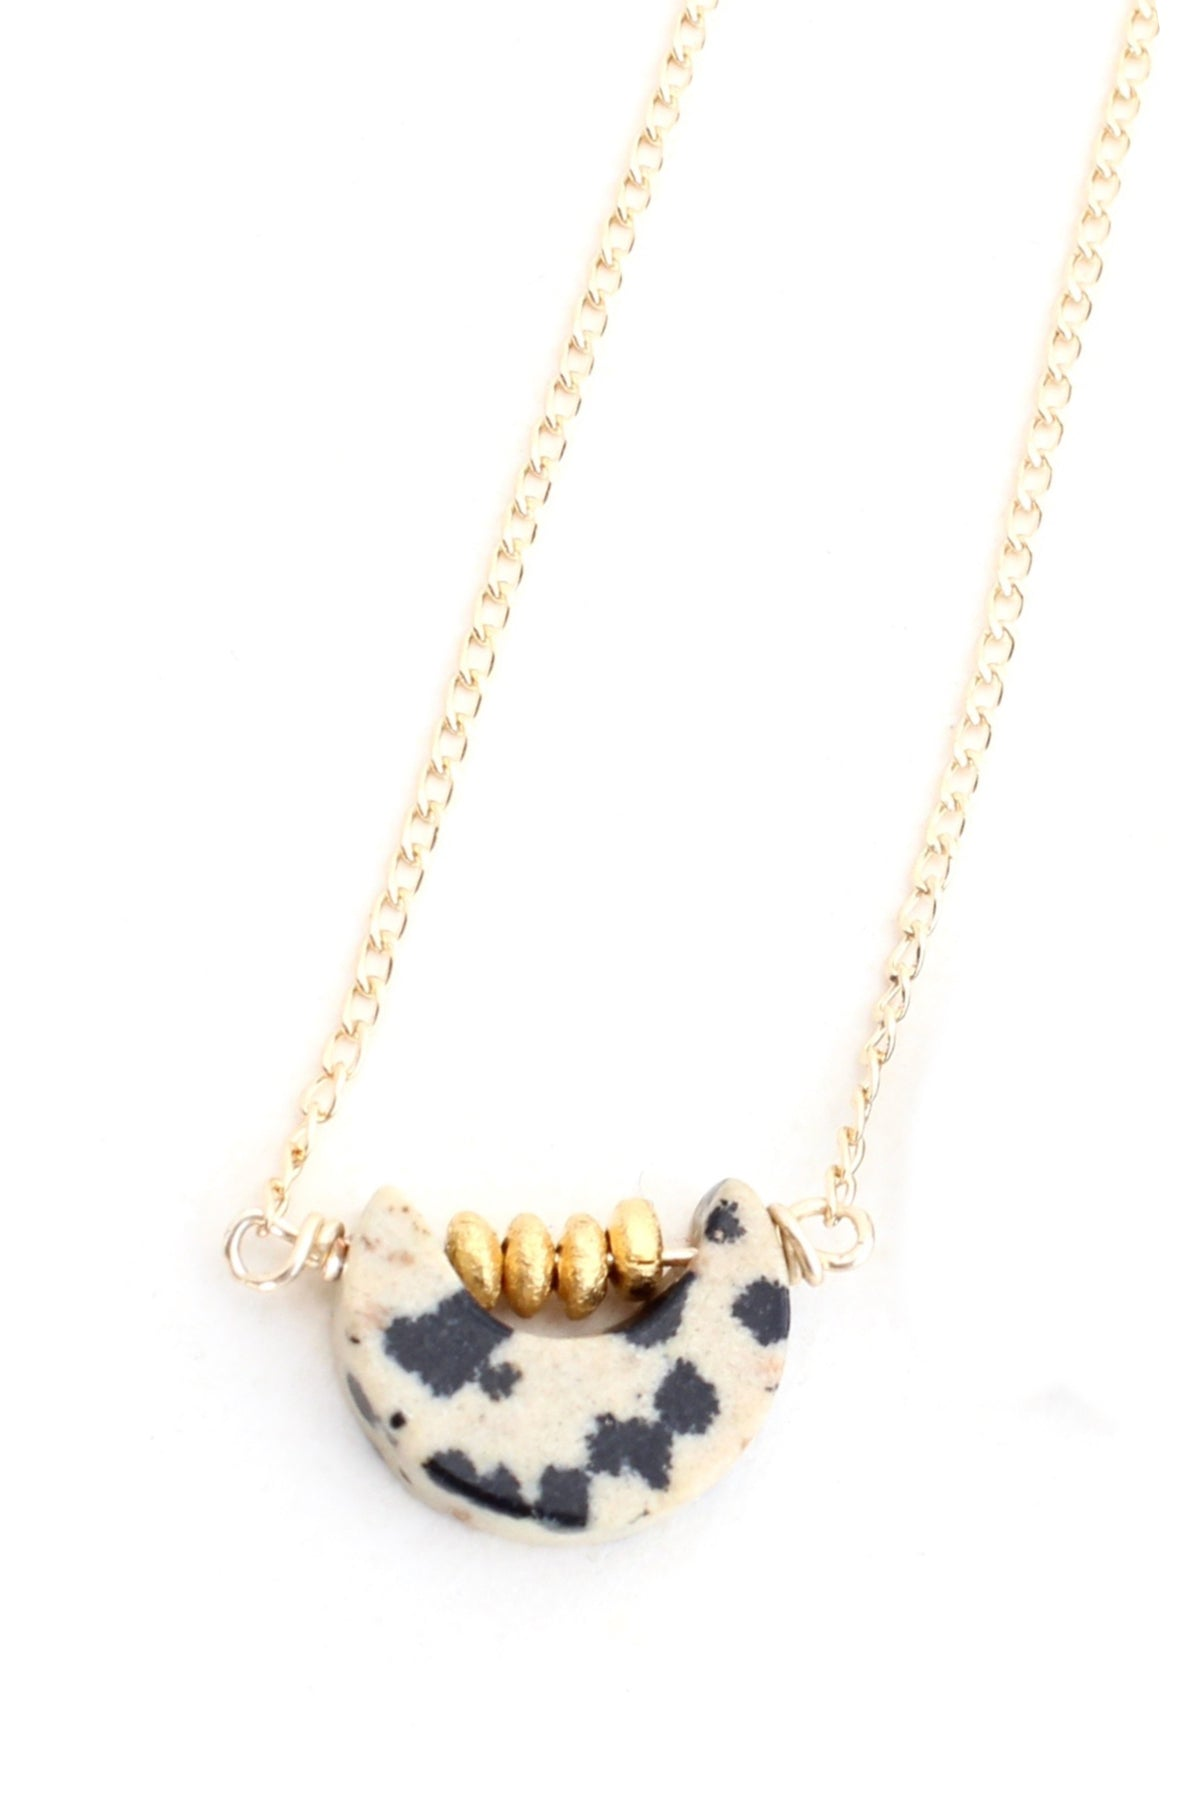 Petite Moon Gem - dalmatian jasper moon necklace